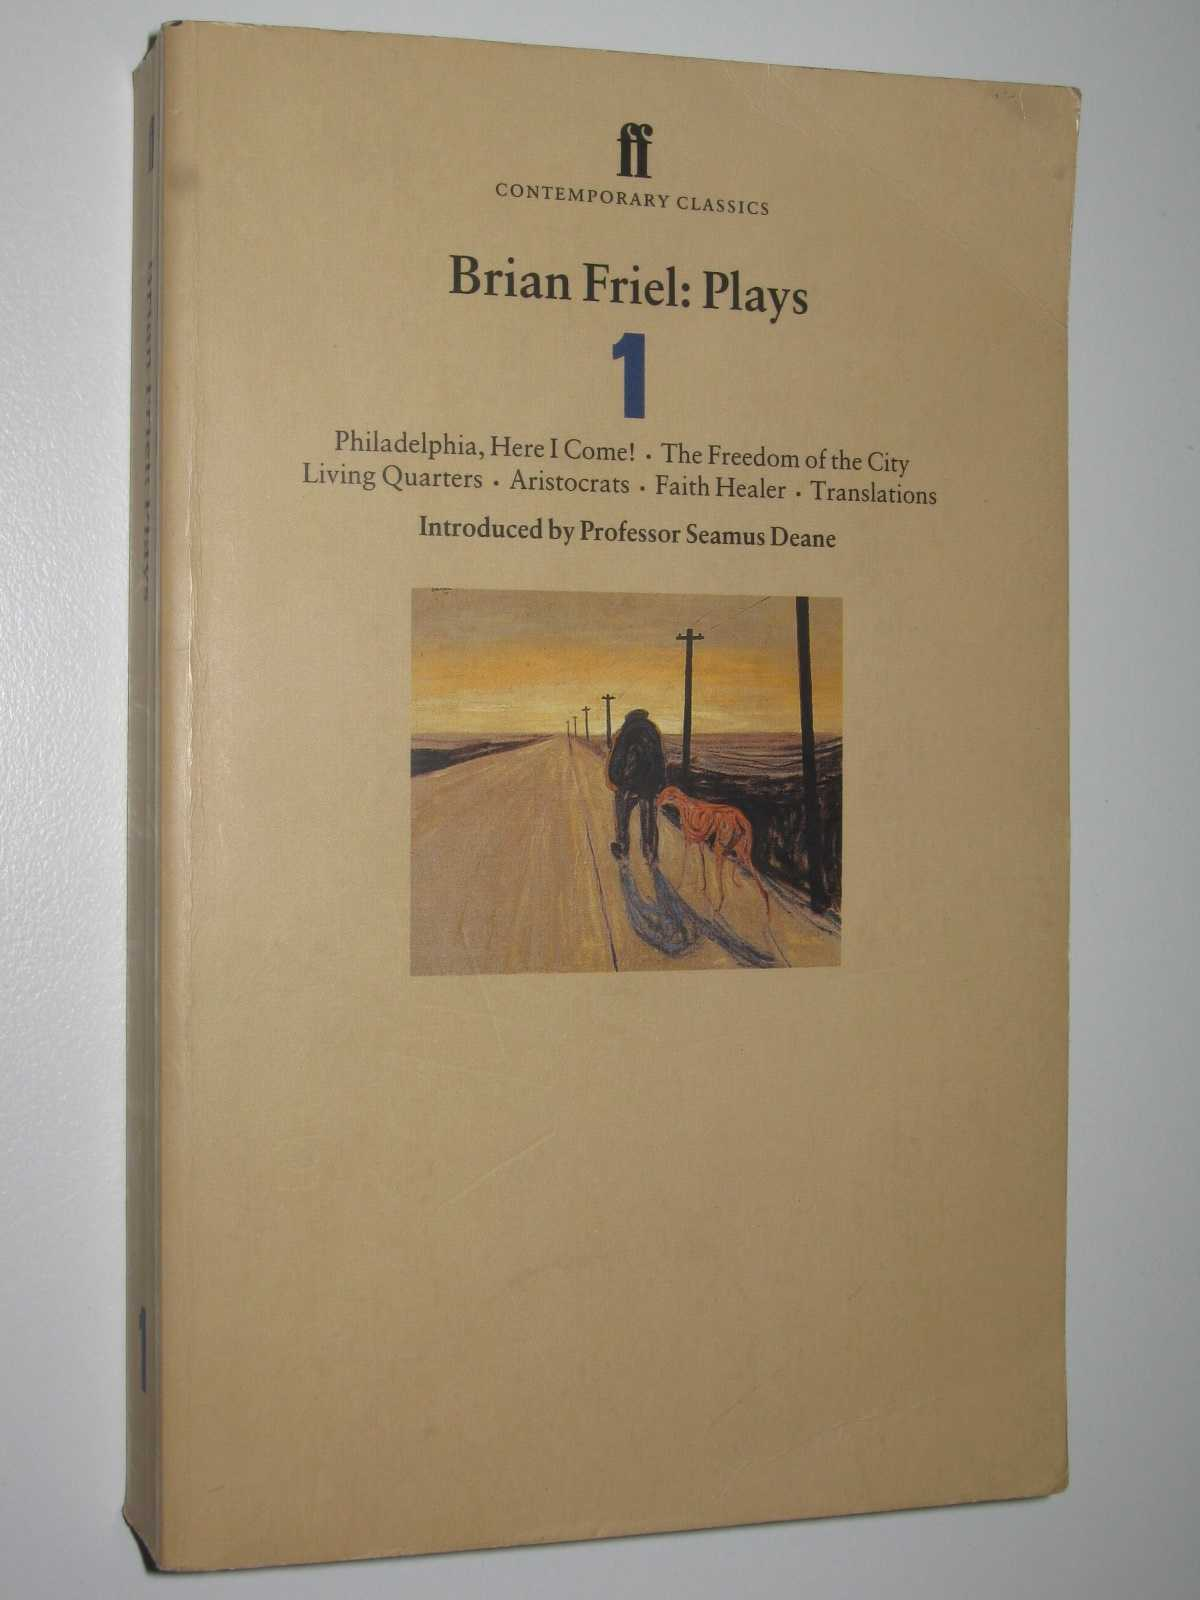 Image for Brian Friels: Plays One : Philadelphia, Here I Come! / The Freedom of the City / Living Quarters / Aristocrats / Faith Healer / Translations